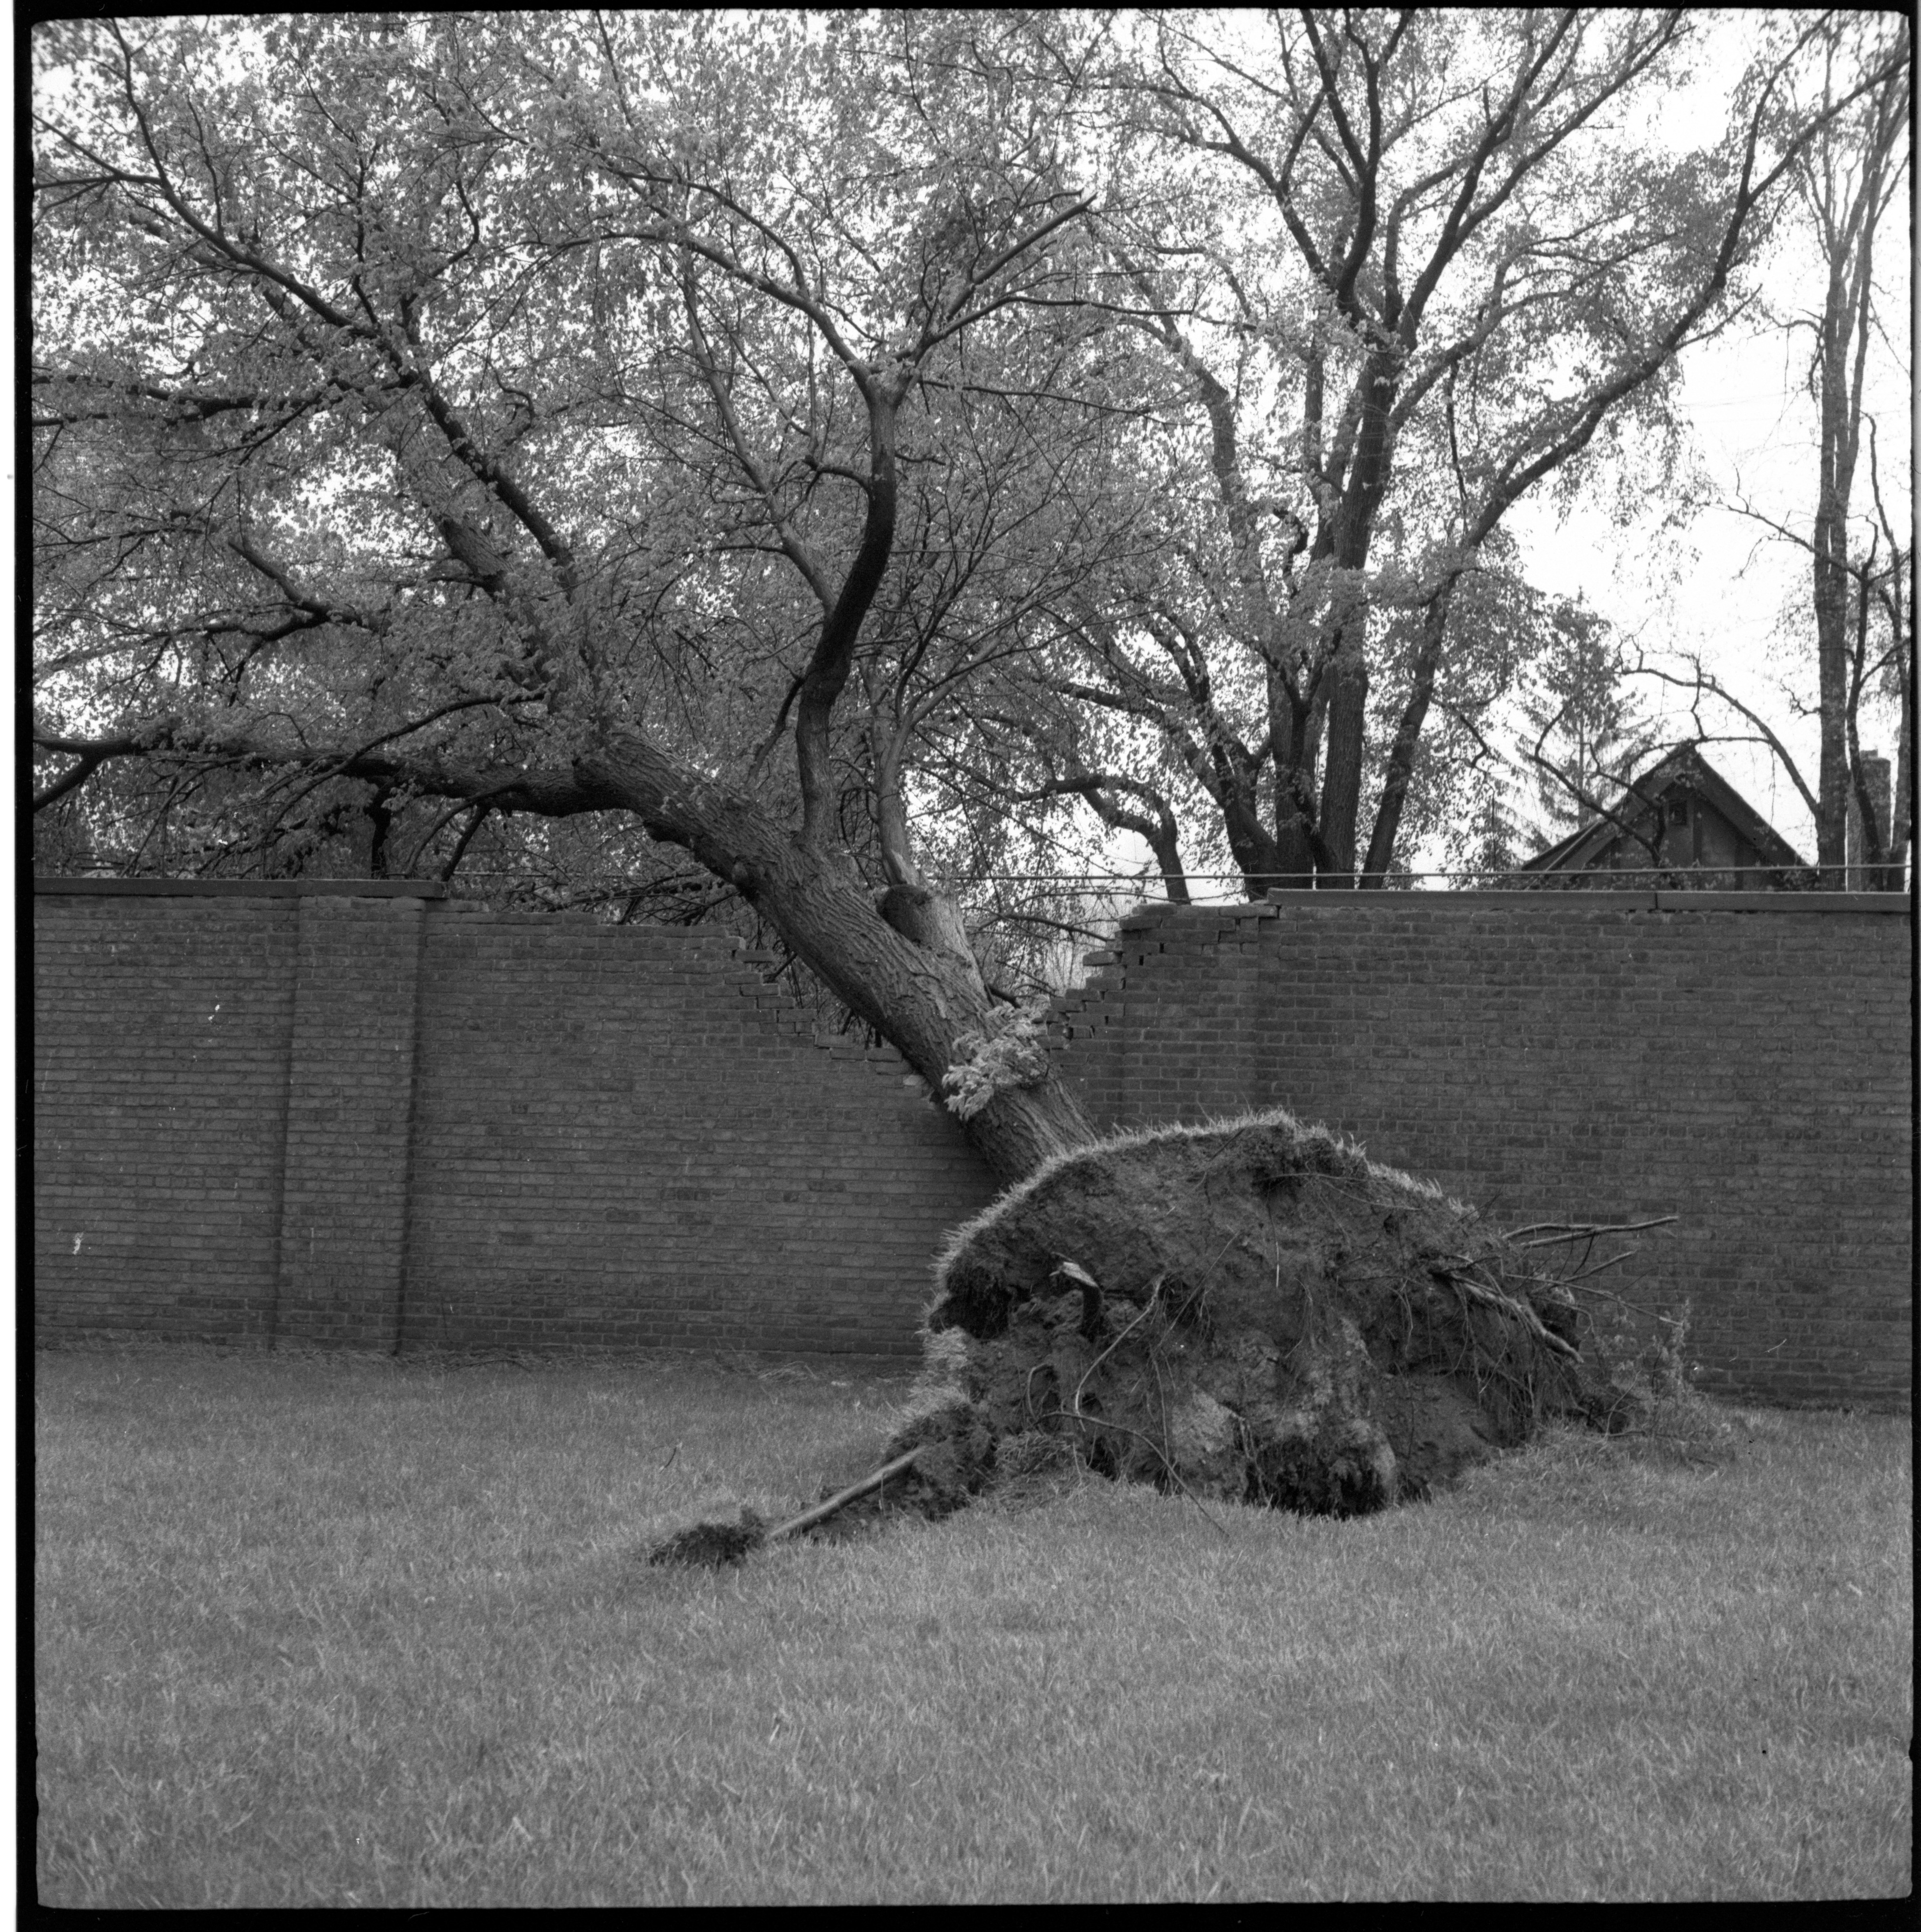 Ferry Field Fence Damaged By A Fallen Tree During The Windstorm, May 1959 image